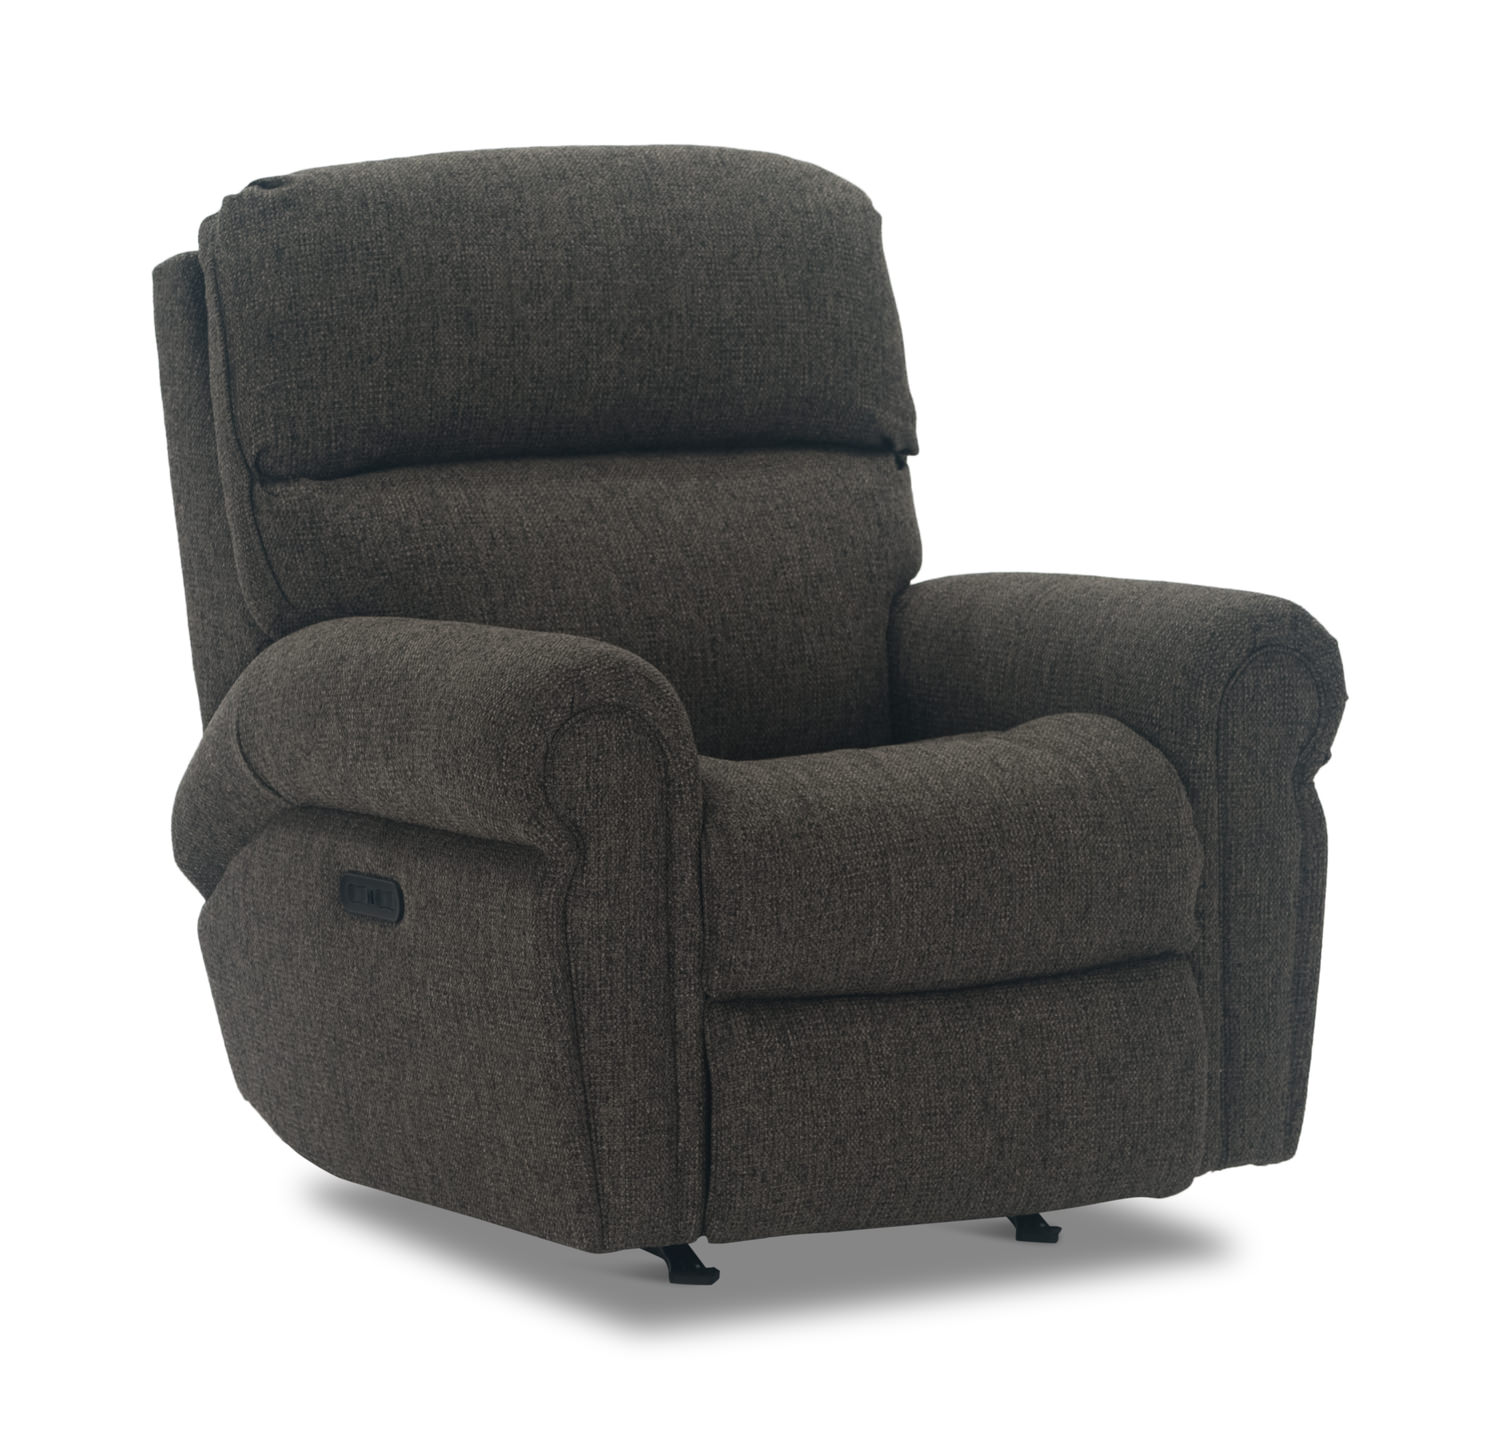 Langston Dual Power Rocker Recliner